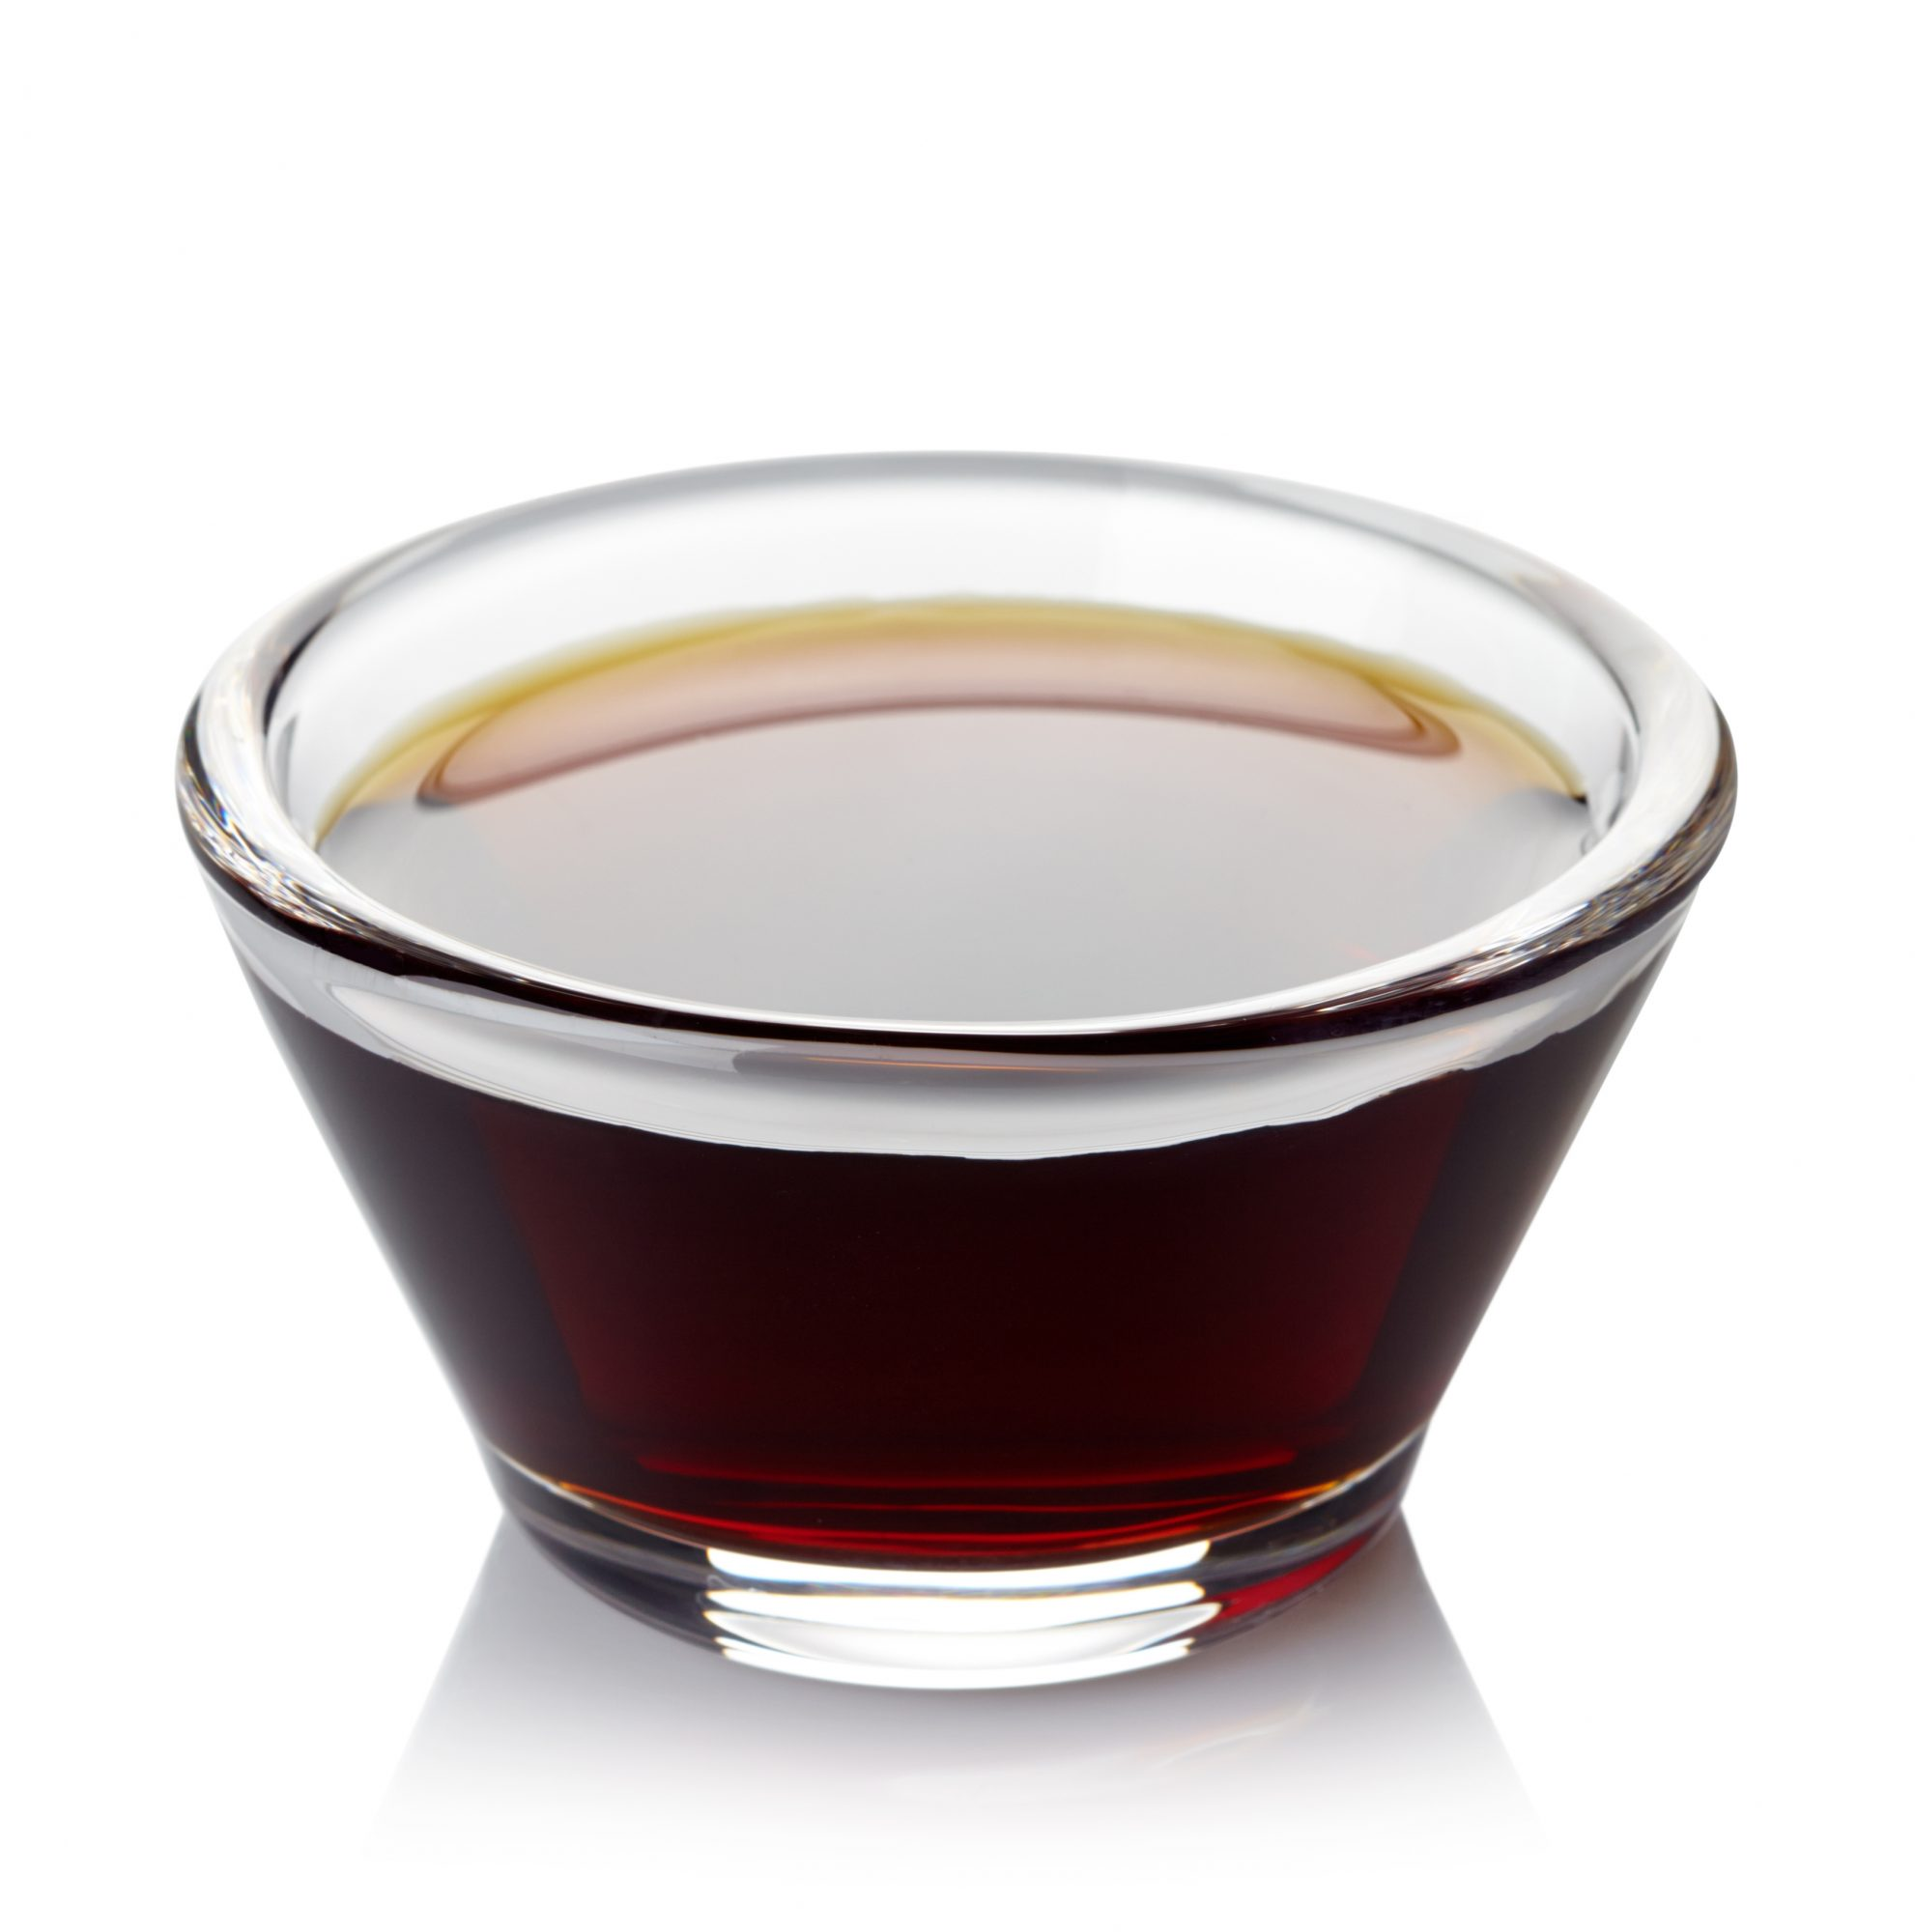 Bowl of soy sauce isolated on white background